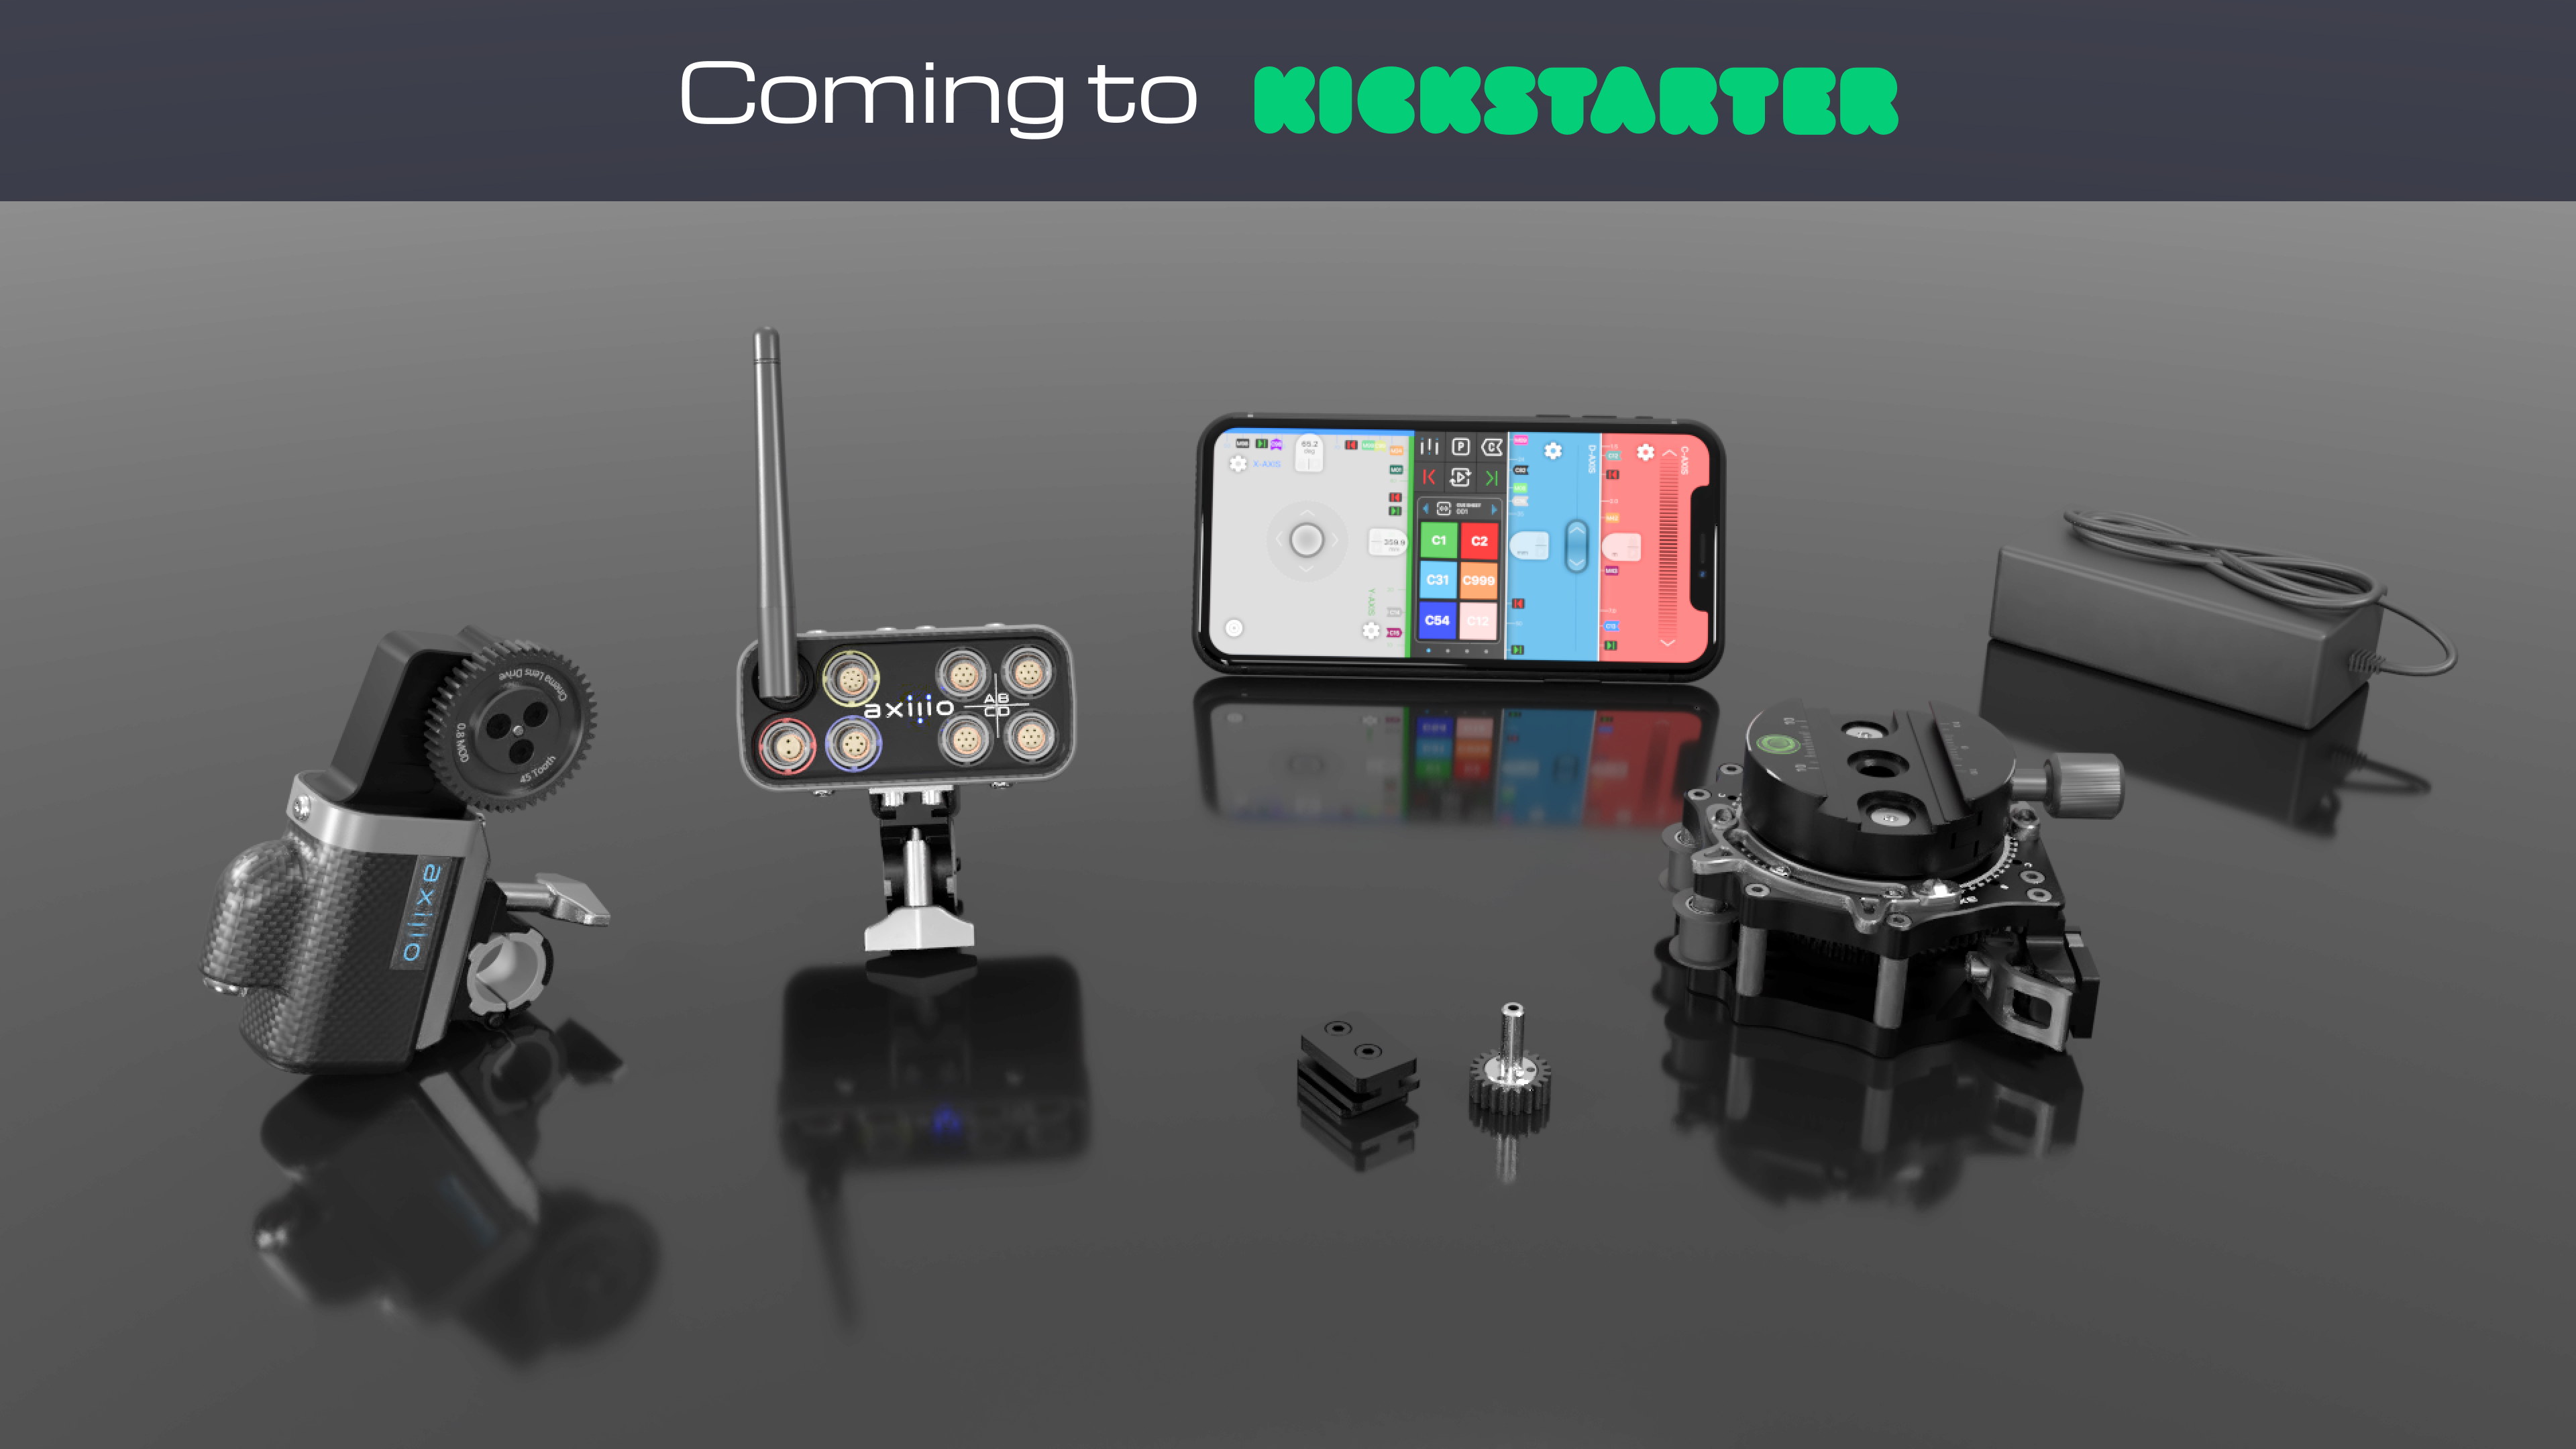 starter-kit-coming-to-kickstarter-dark-thumb-011.png